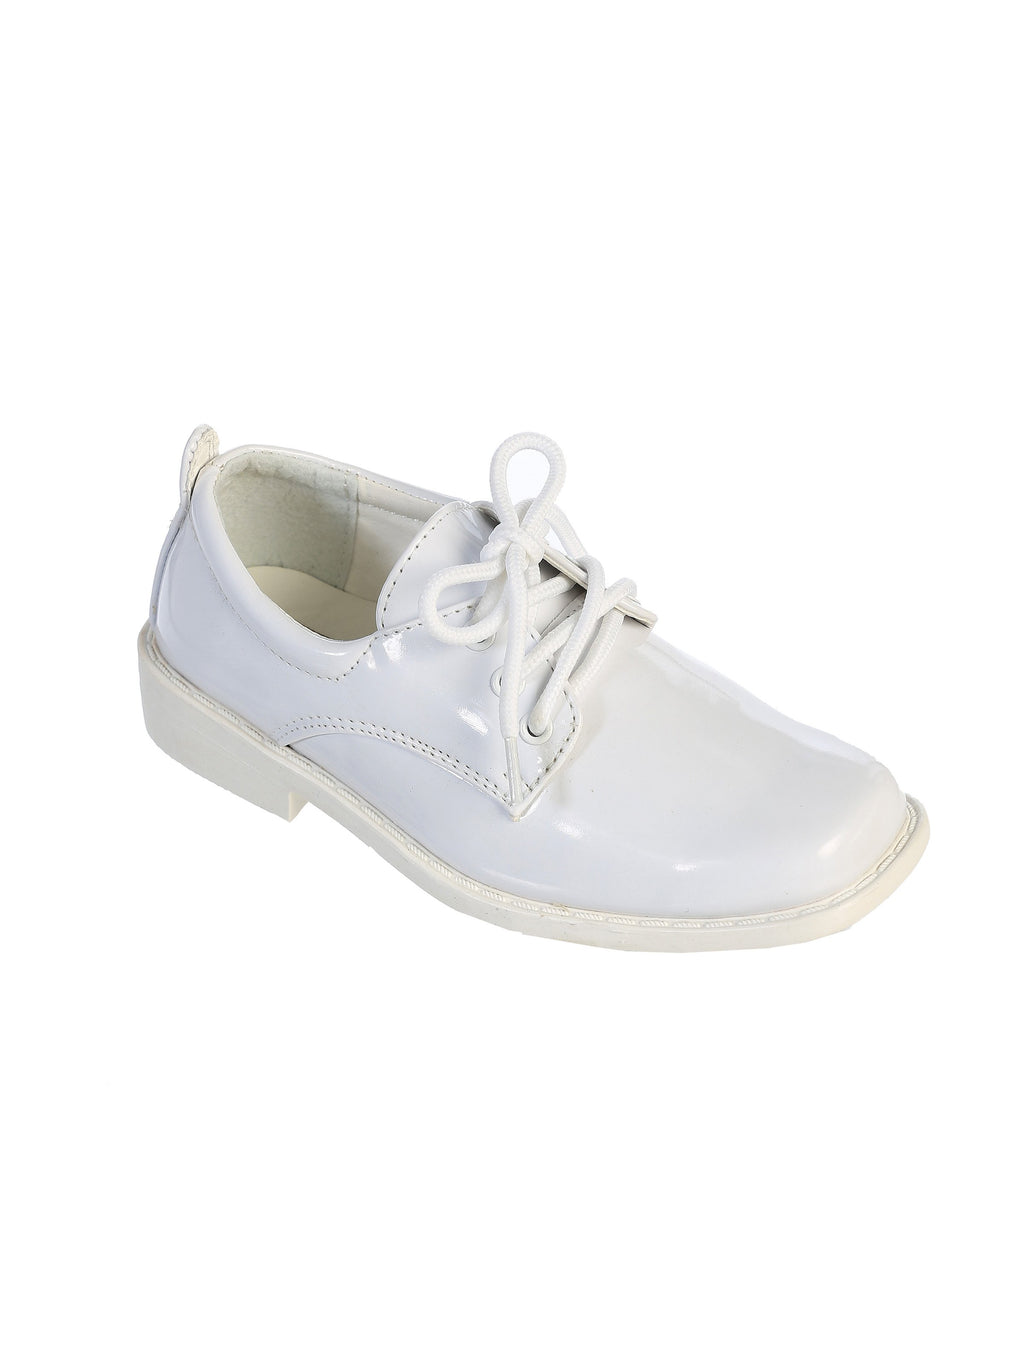 TipTop Patent Shiny White Boys Dress Oxford Shoes